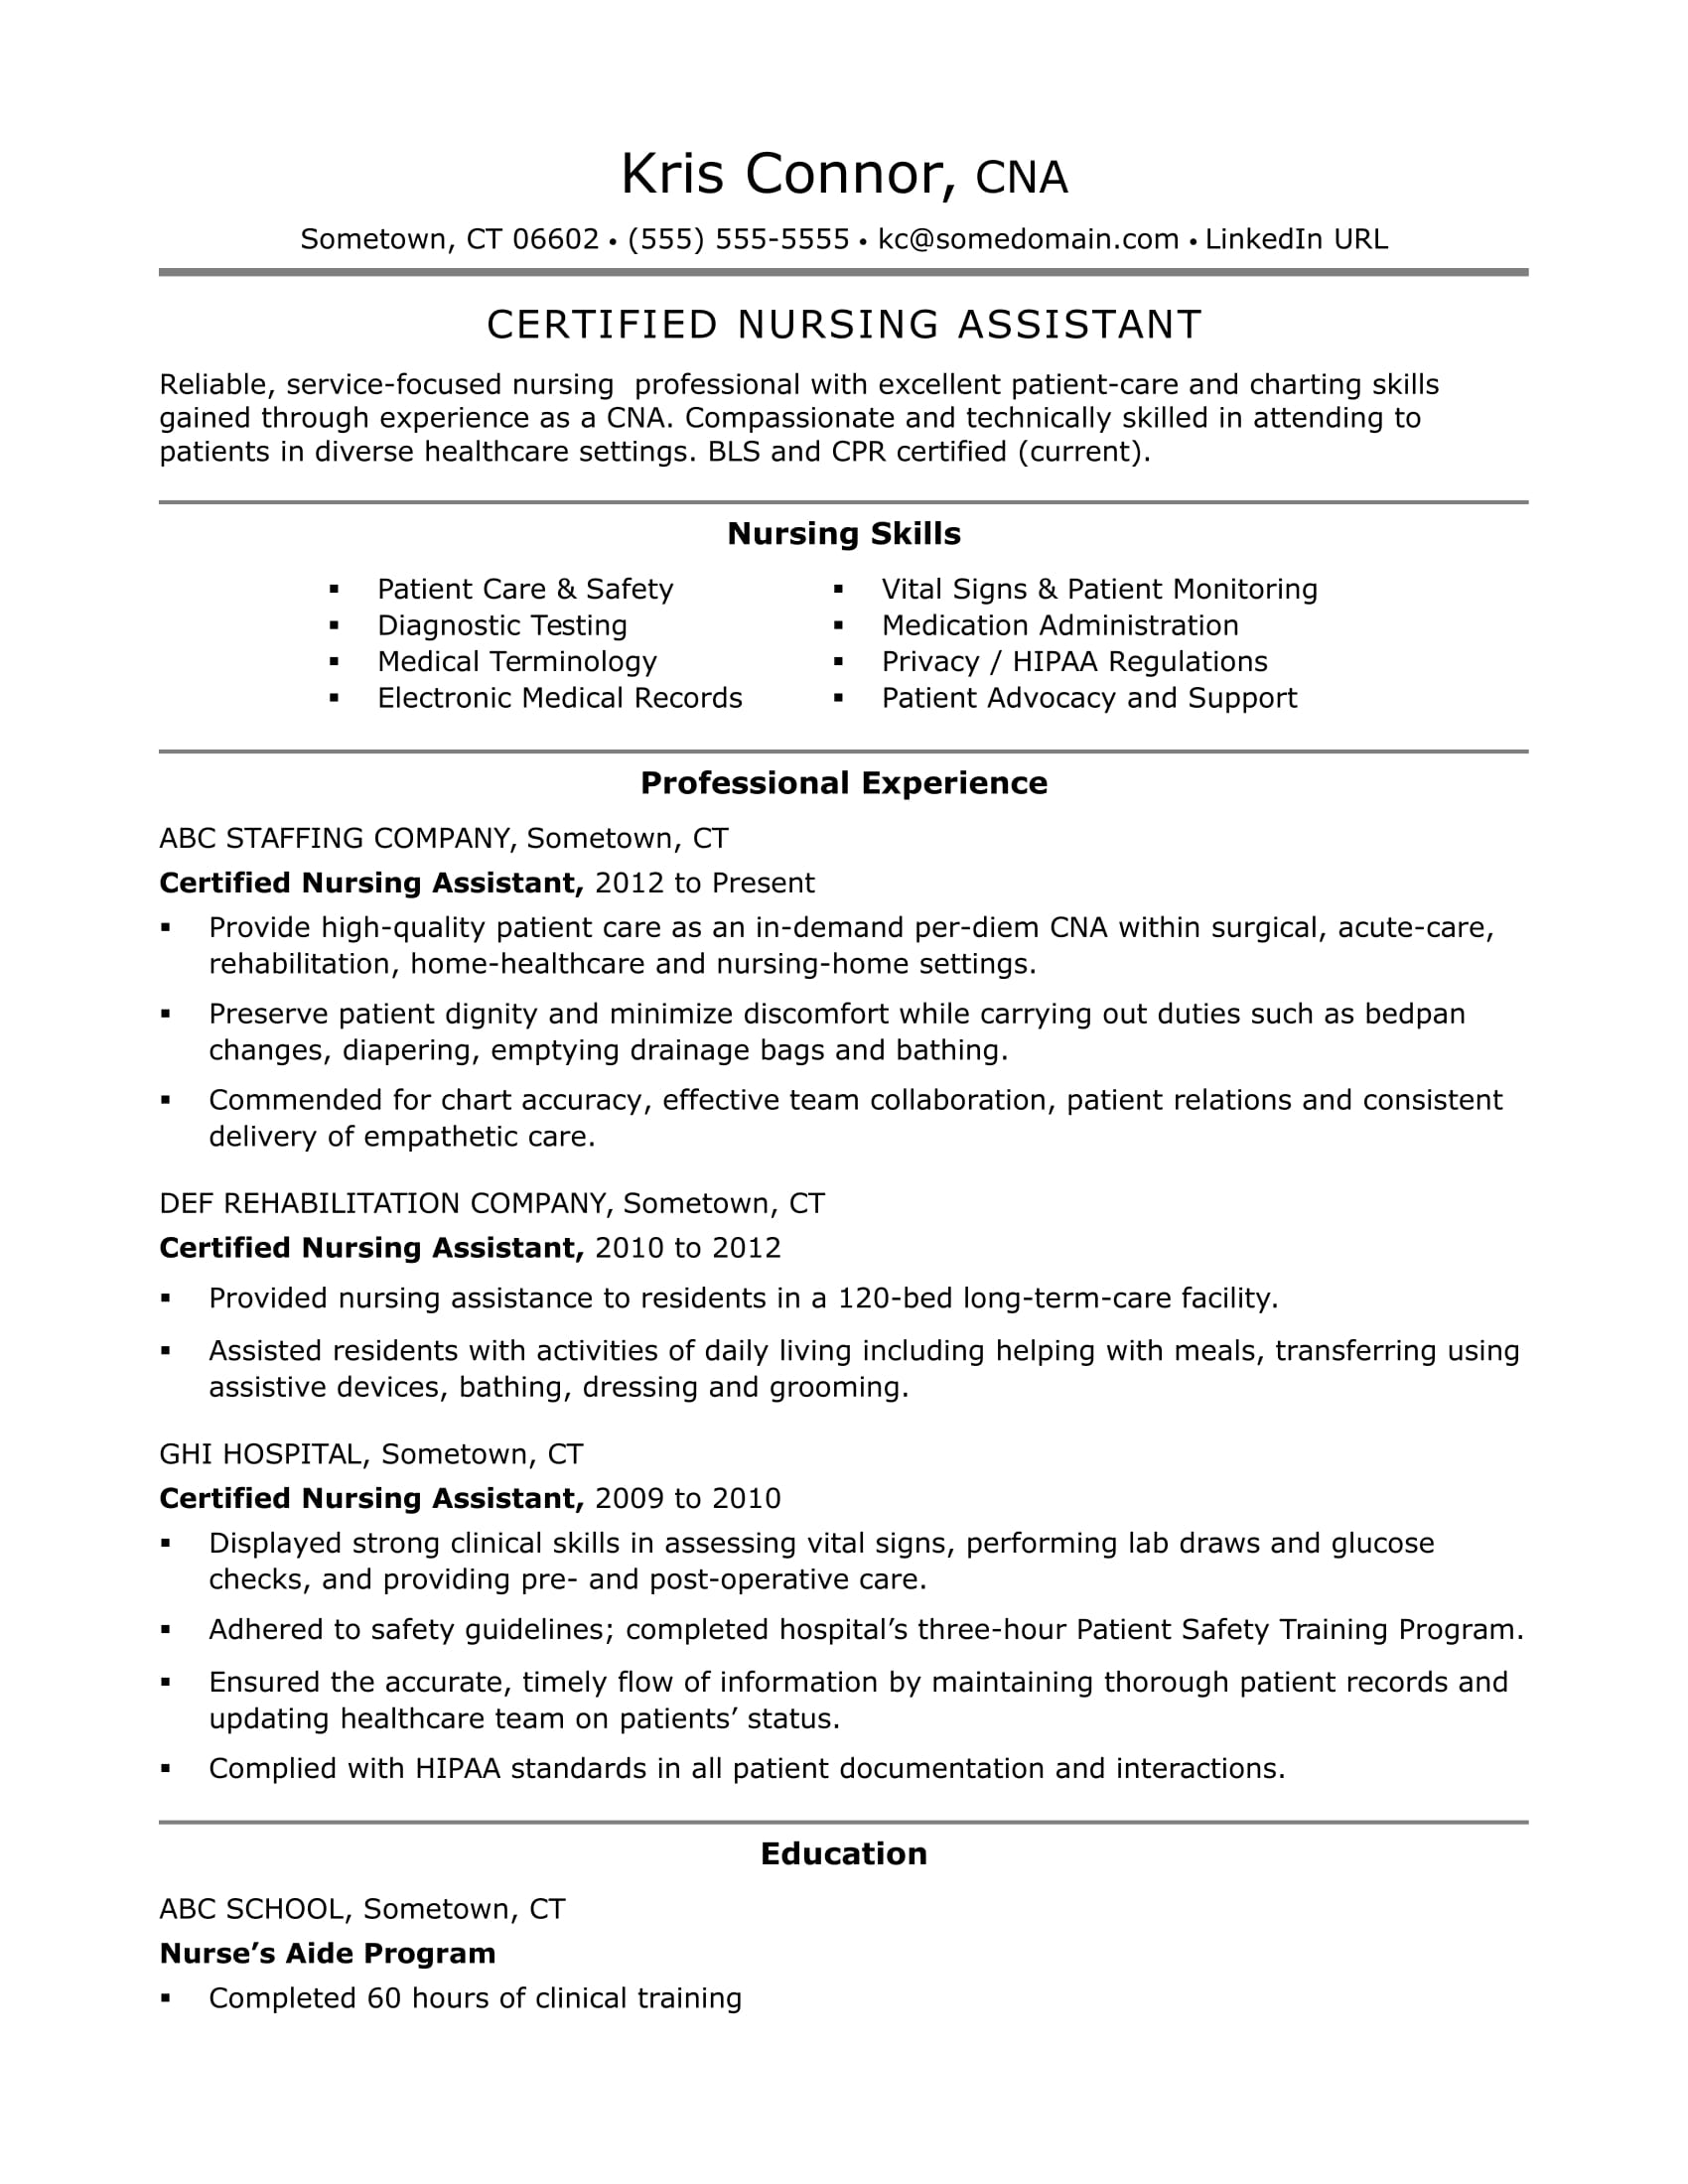 cna resume examples skills for cnas monster nursing assistant duties certified objectives Resume Nursing Assistant Duties For Resume